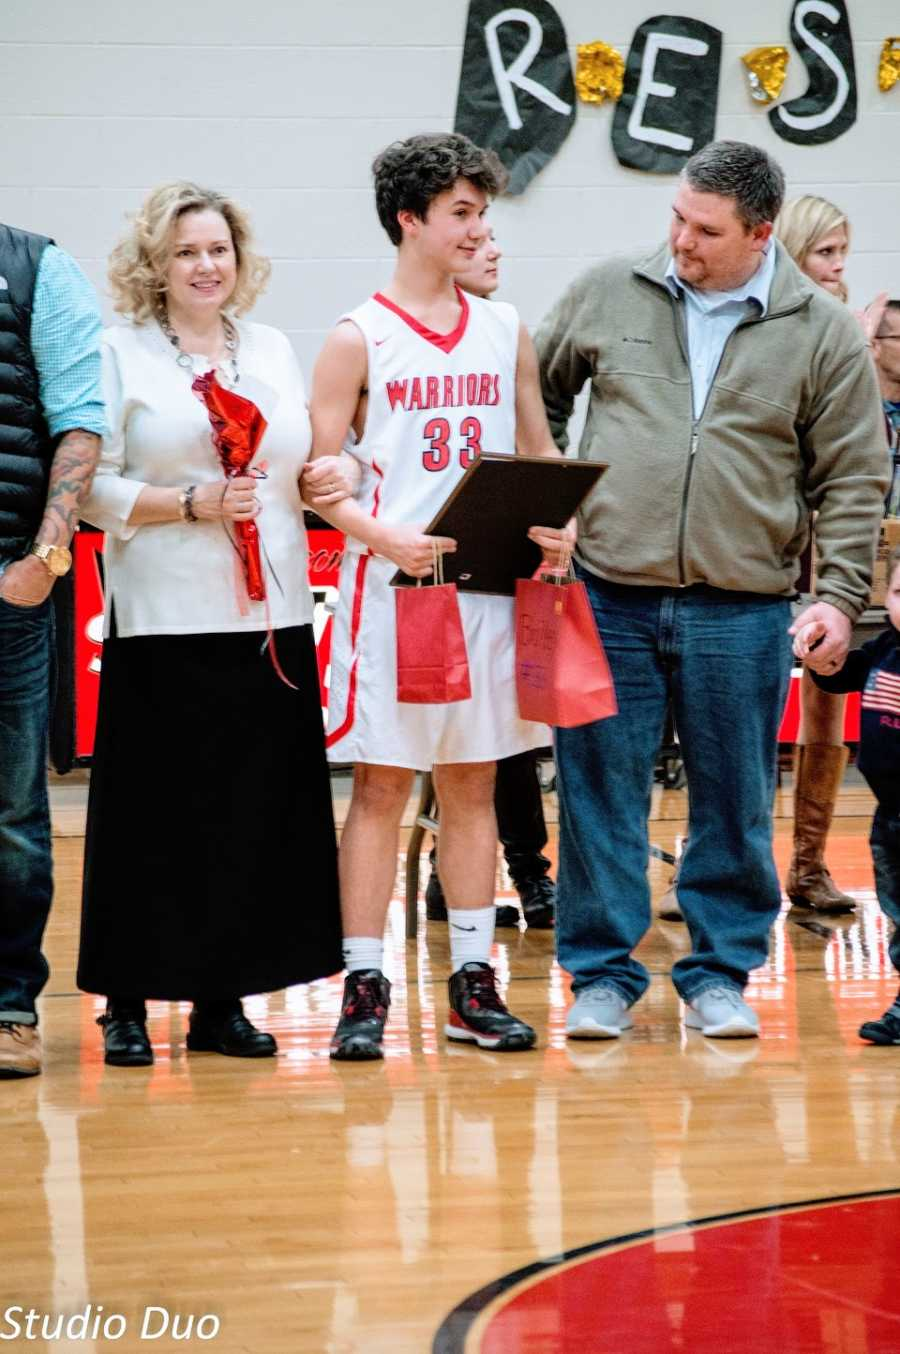 Parents stand in a gym with their son who wears a basketball uniform